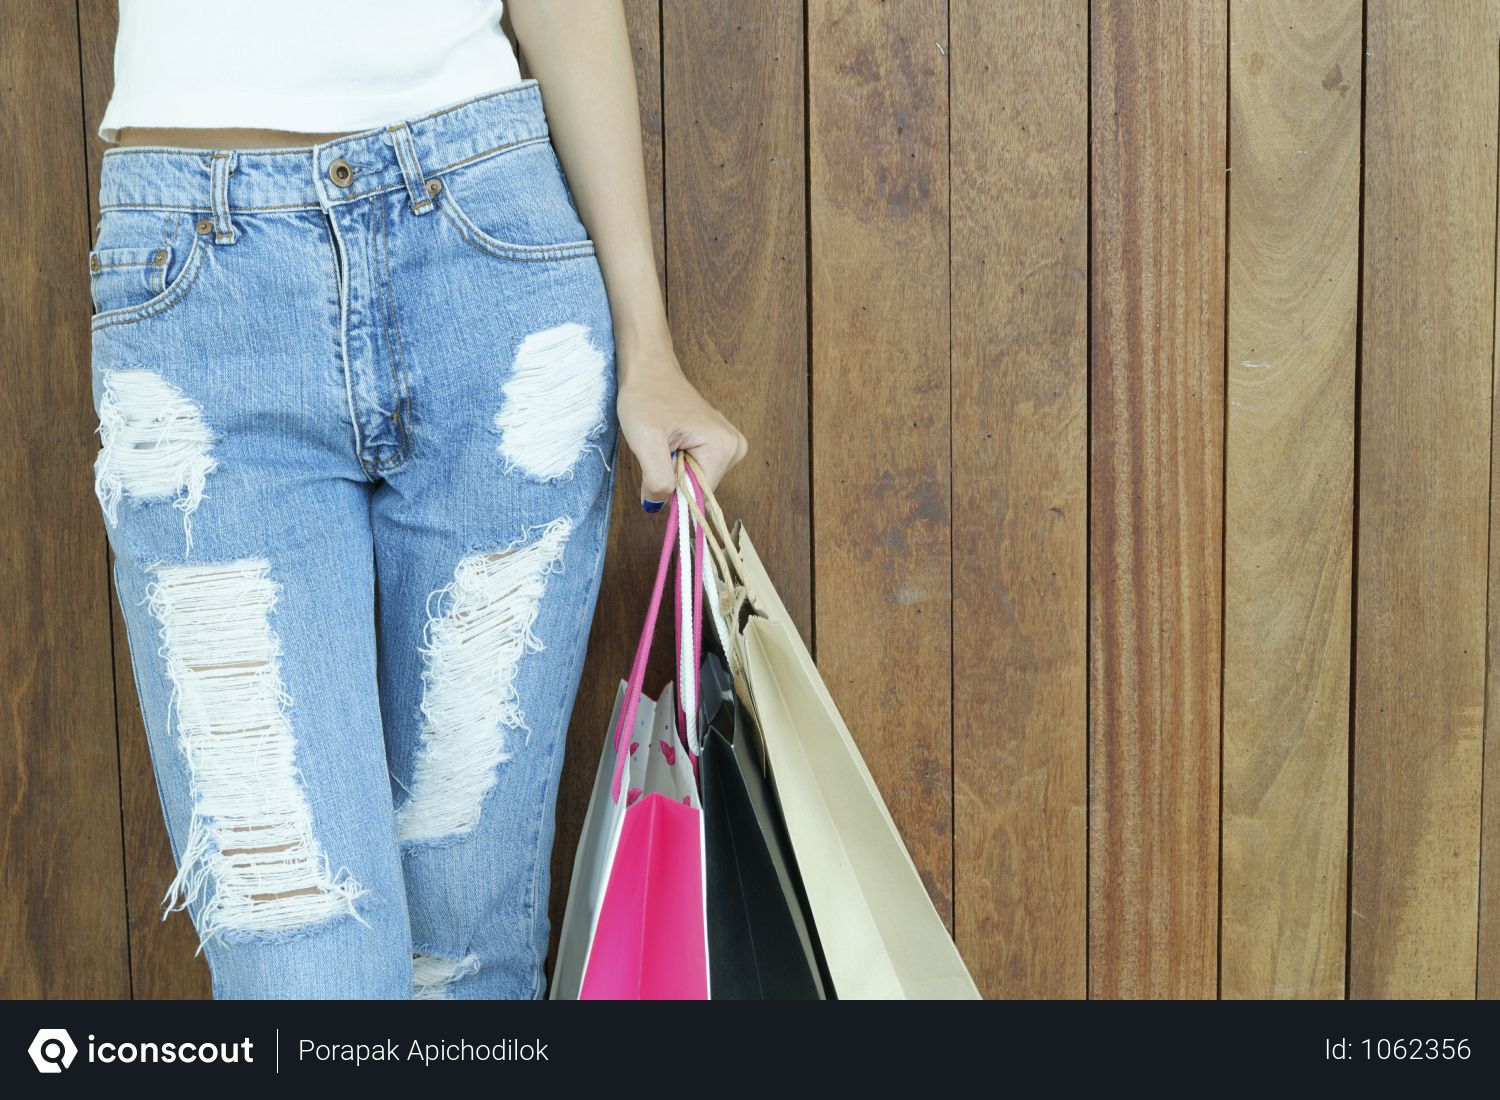 Free Woman In Ripped Jeans Holding Shopping Bags Photo Download In Png Jpg Format